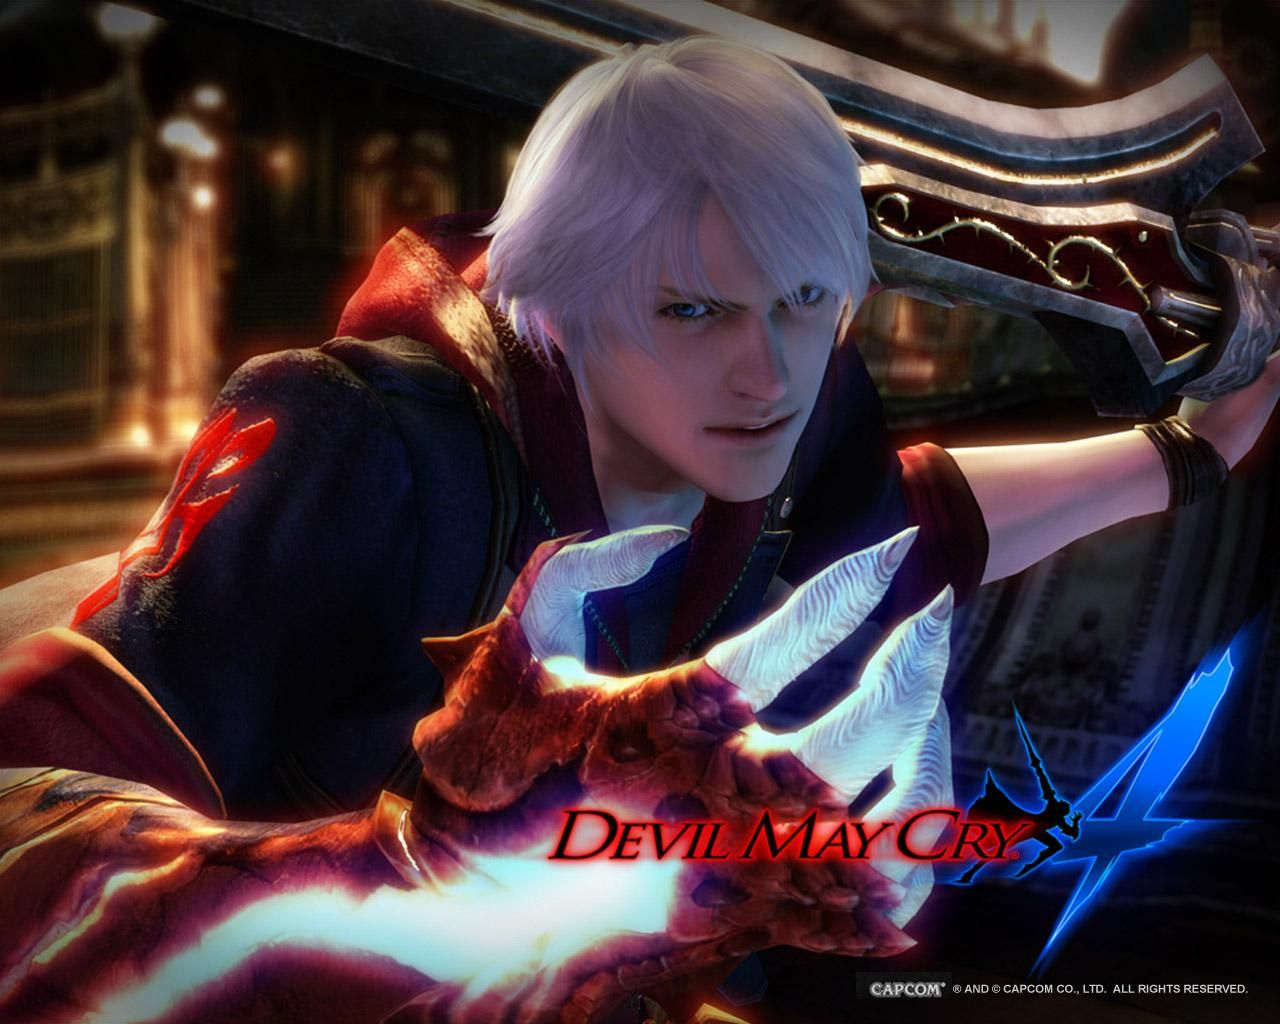 http://1.bp.blogspot.com/-EmXBoov-O2U/UCo5q1CyRJI/AAAAAAAAAN0/_SHhBBEb1D0/s1600/Devil-May-Cry-4-3-1280x1024-newanimationworld.jpg